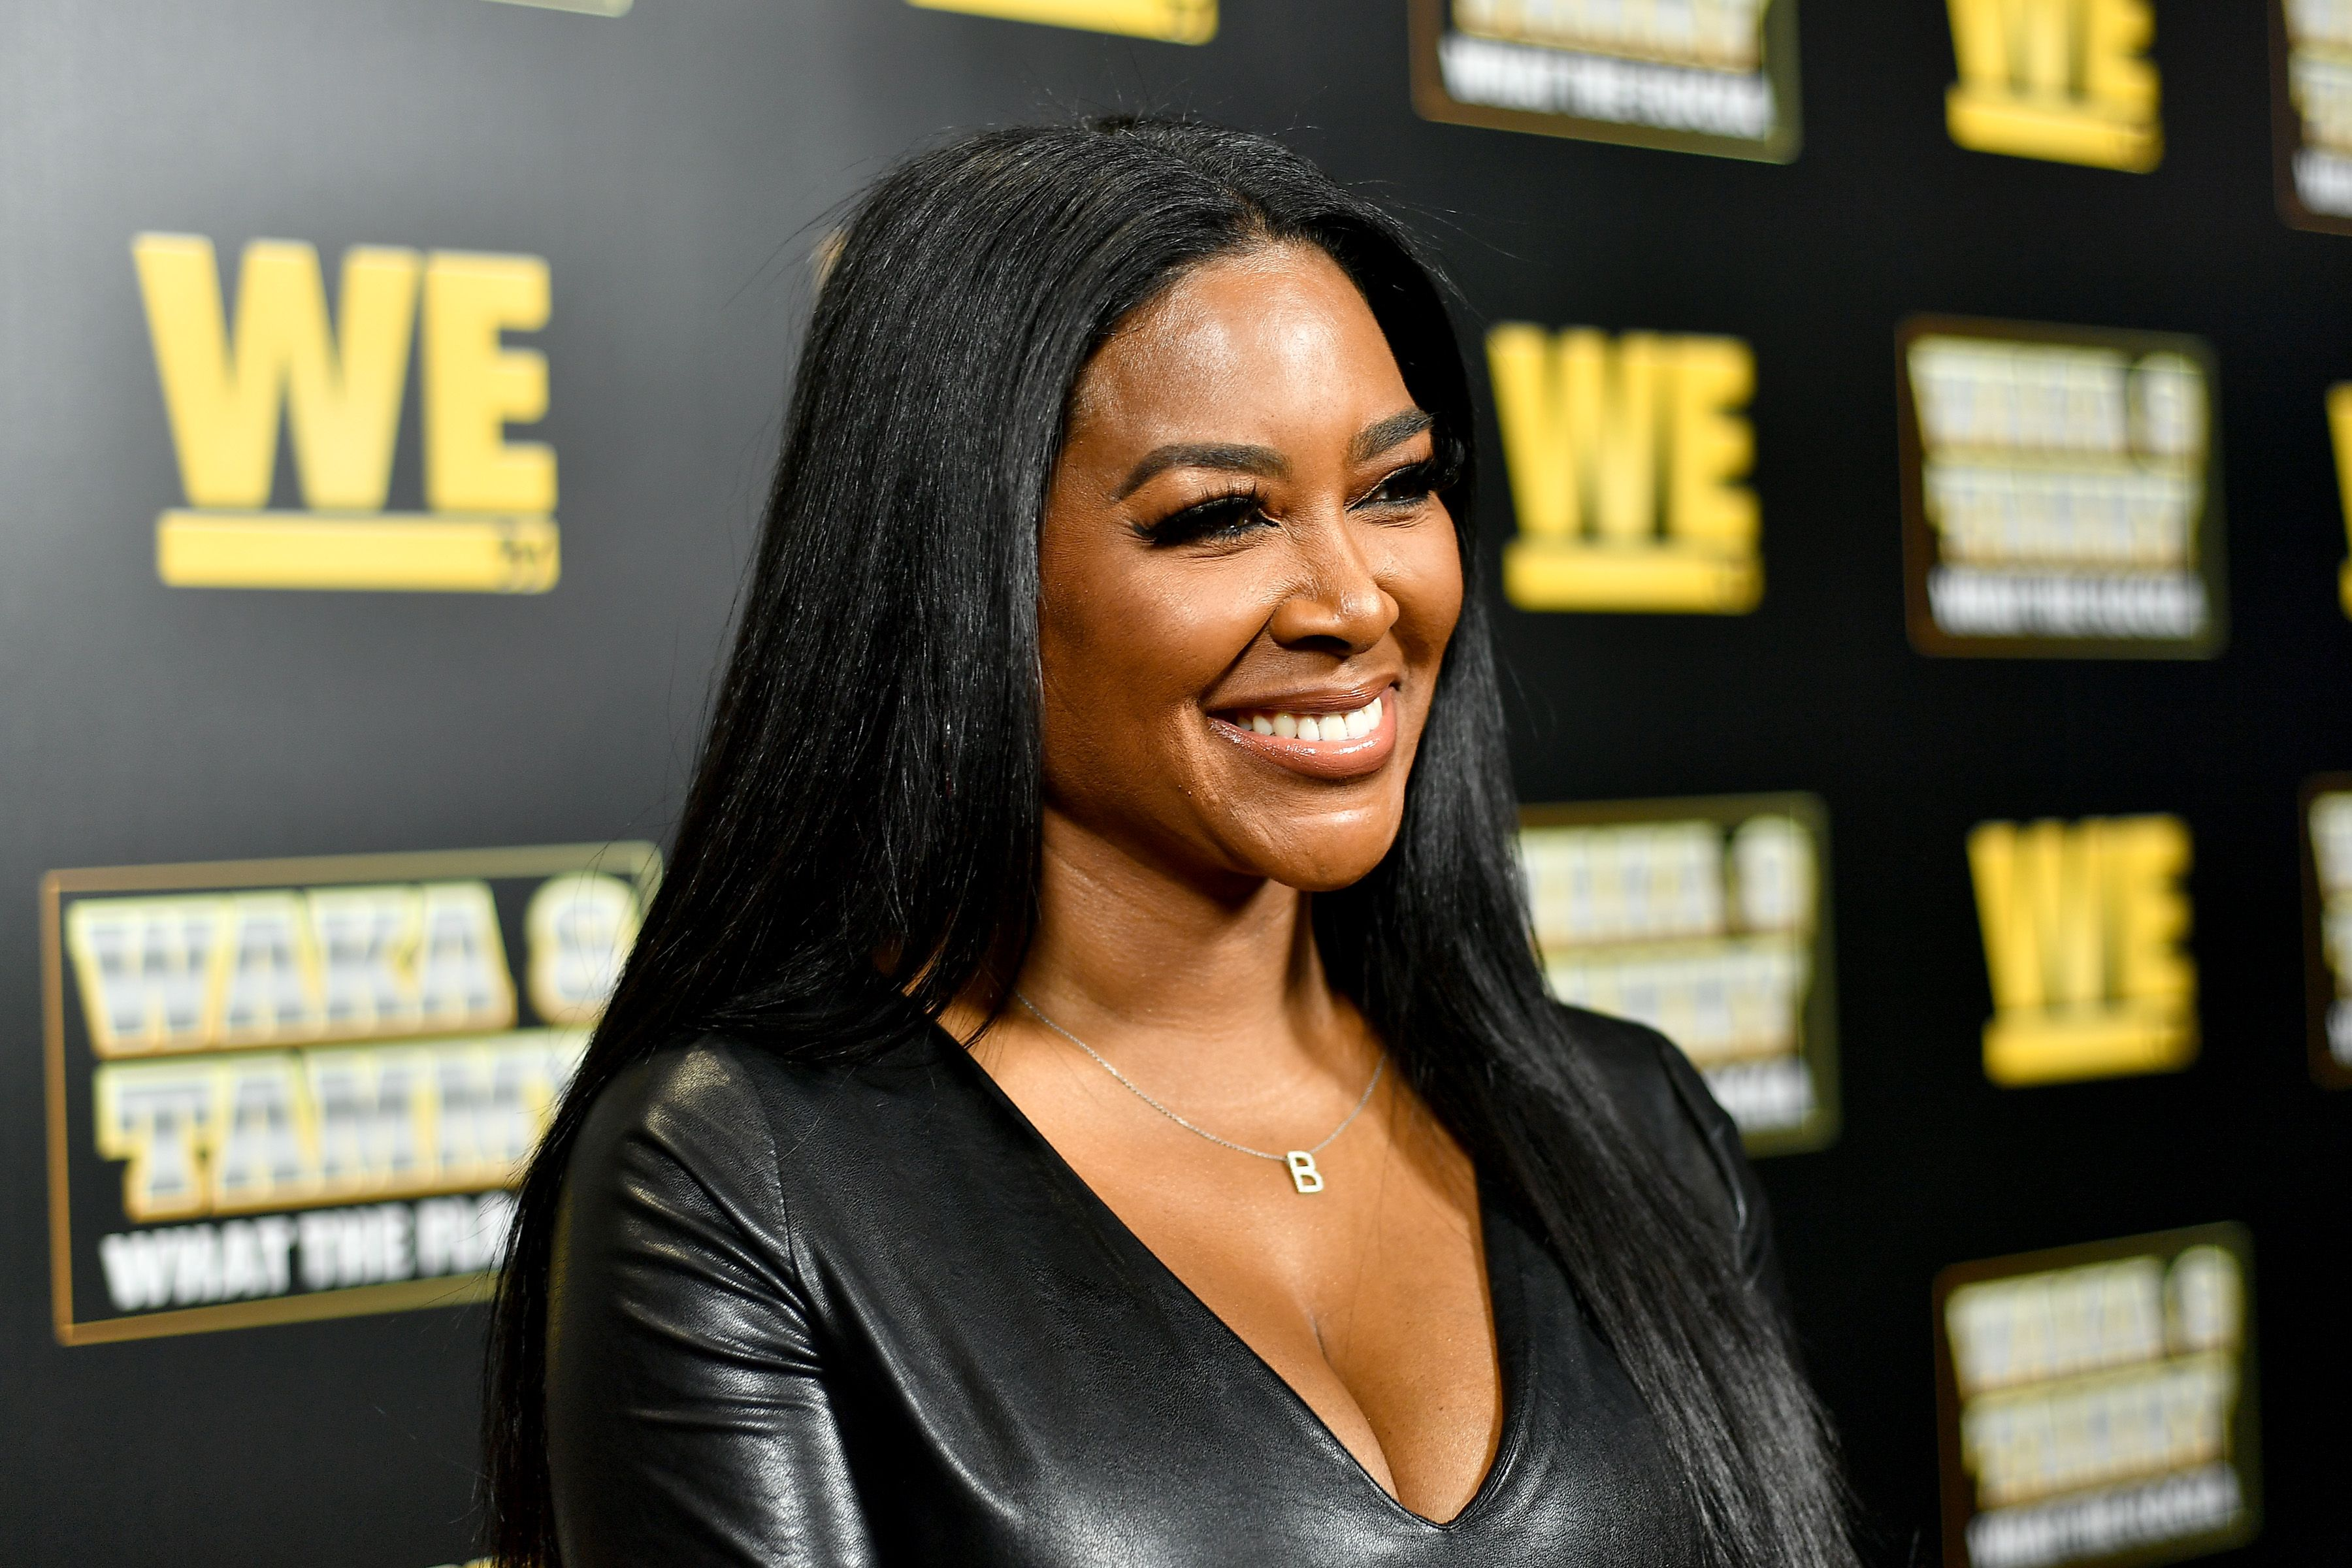 Kenya Moore S Daughter Brooklyn Daly Looks Adorable With Her Toned Muscles In A Floral Swimsuit